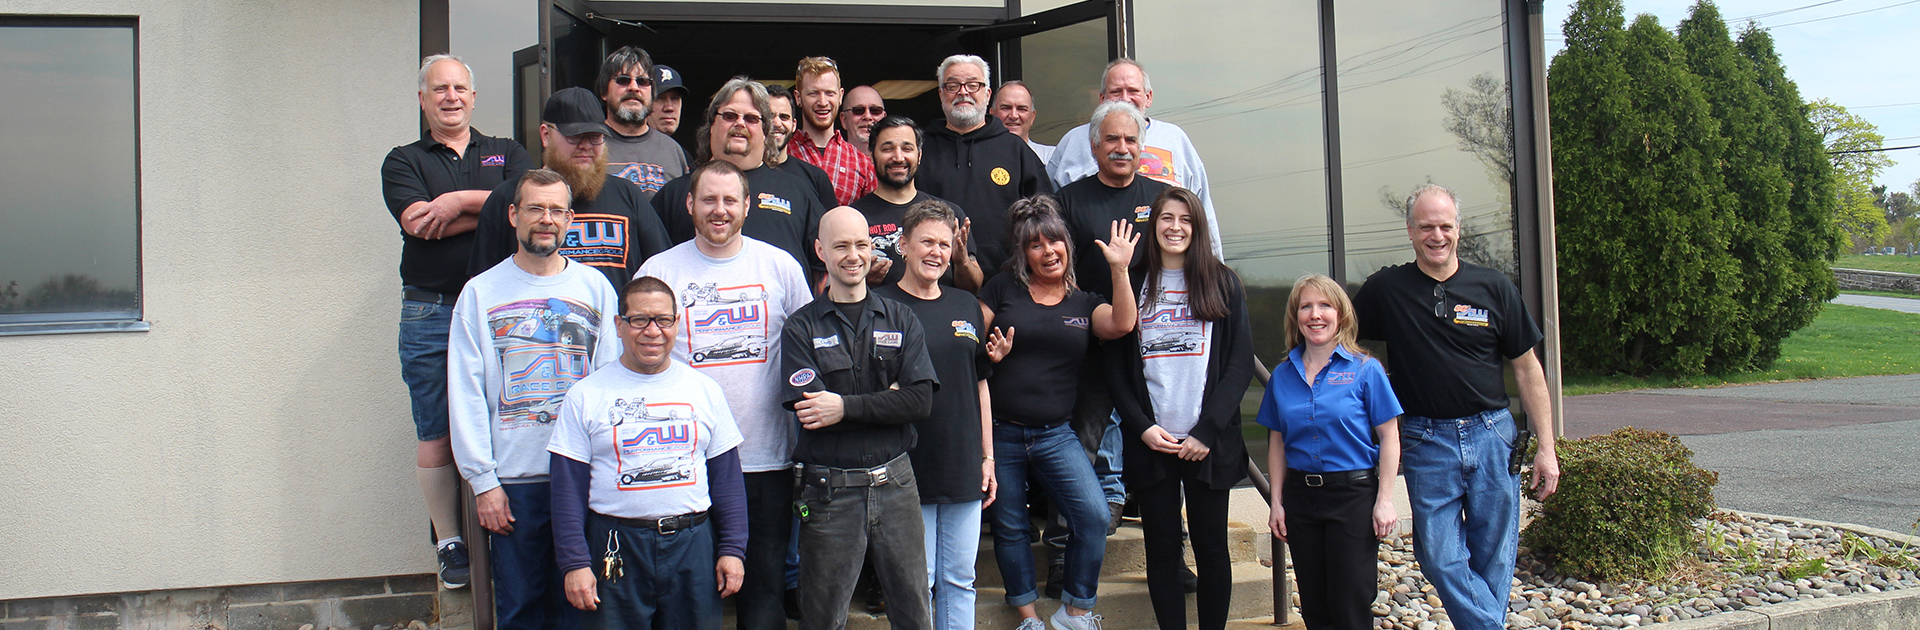 S&W Staff Group Photo May 2019